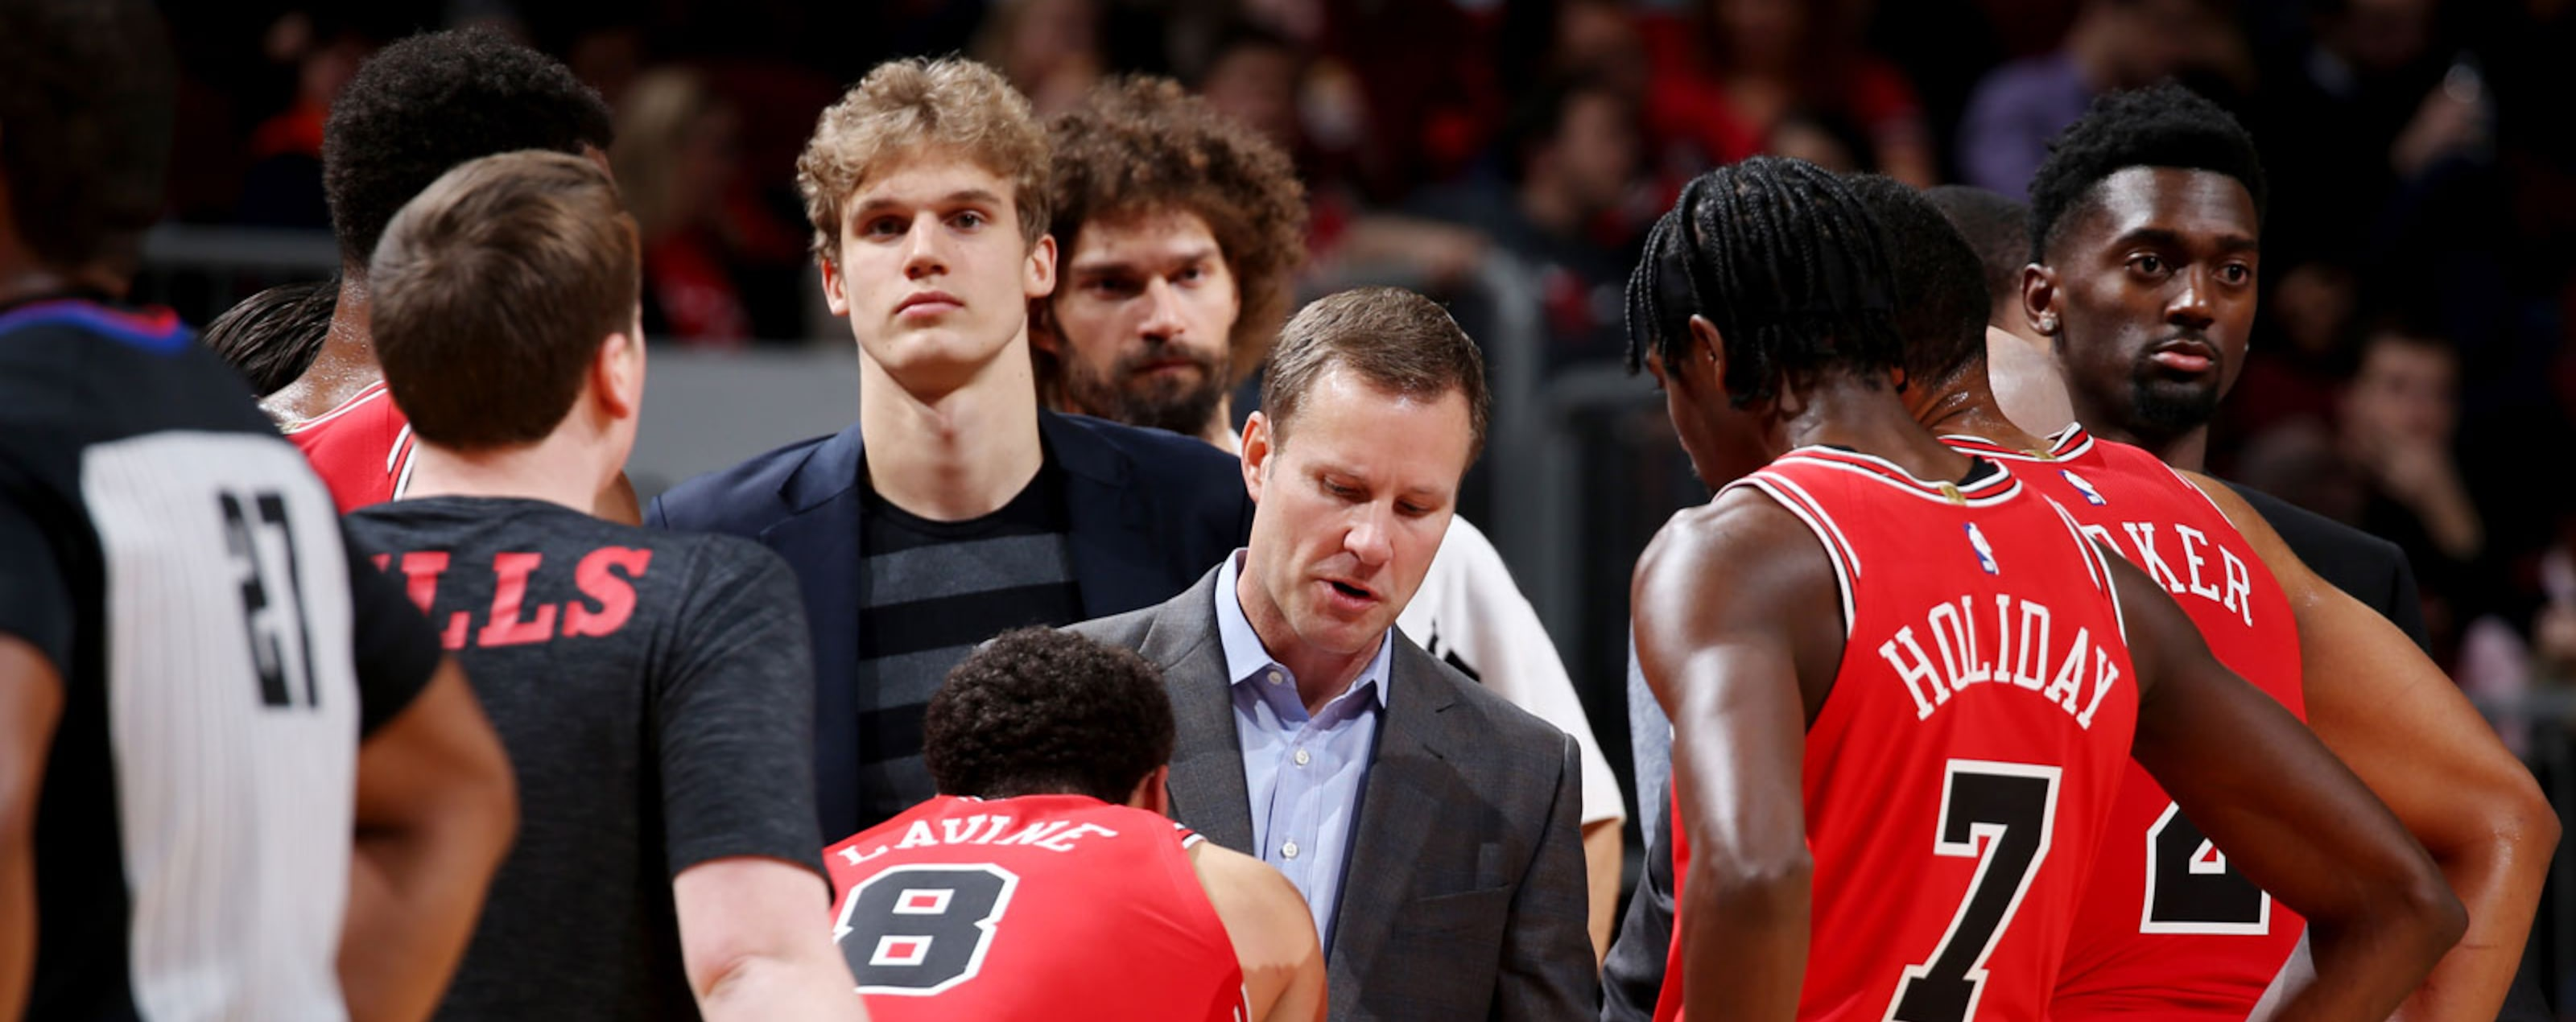 Chicago Bulls huddle up during the game against the LA Clippers on November 12, 2018 at the United Center in Chicago, Illinois.